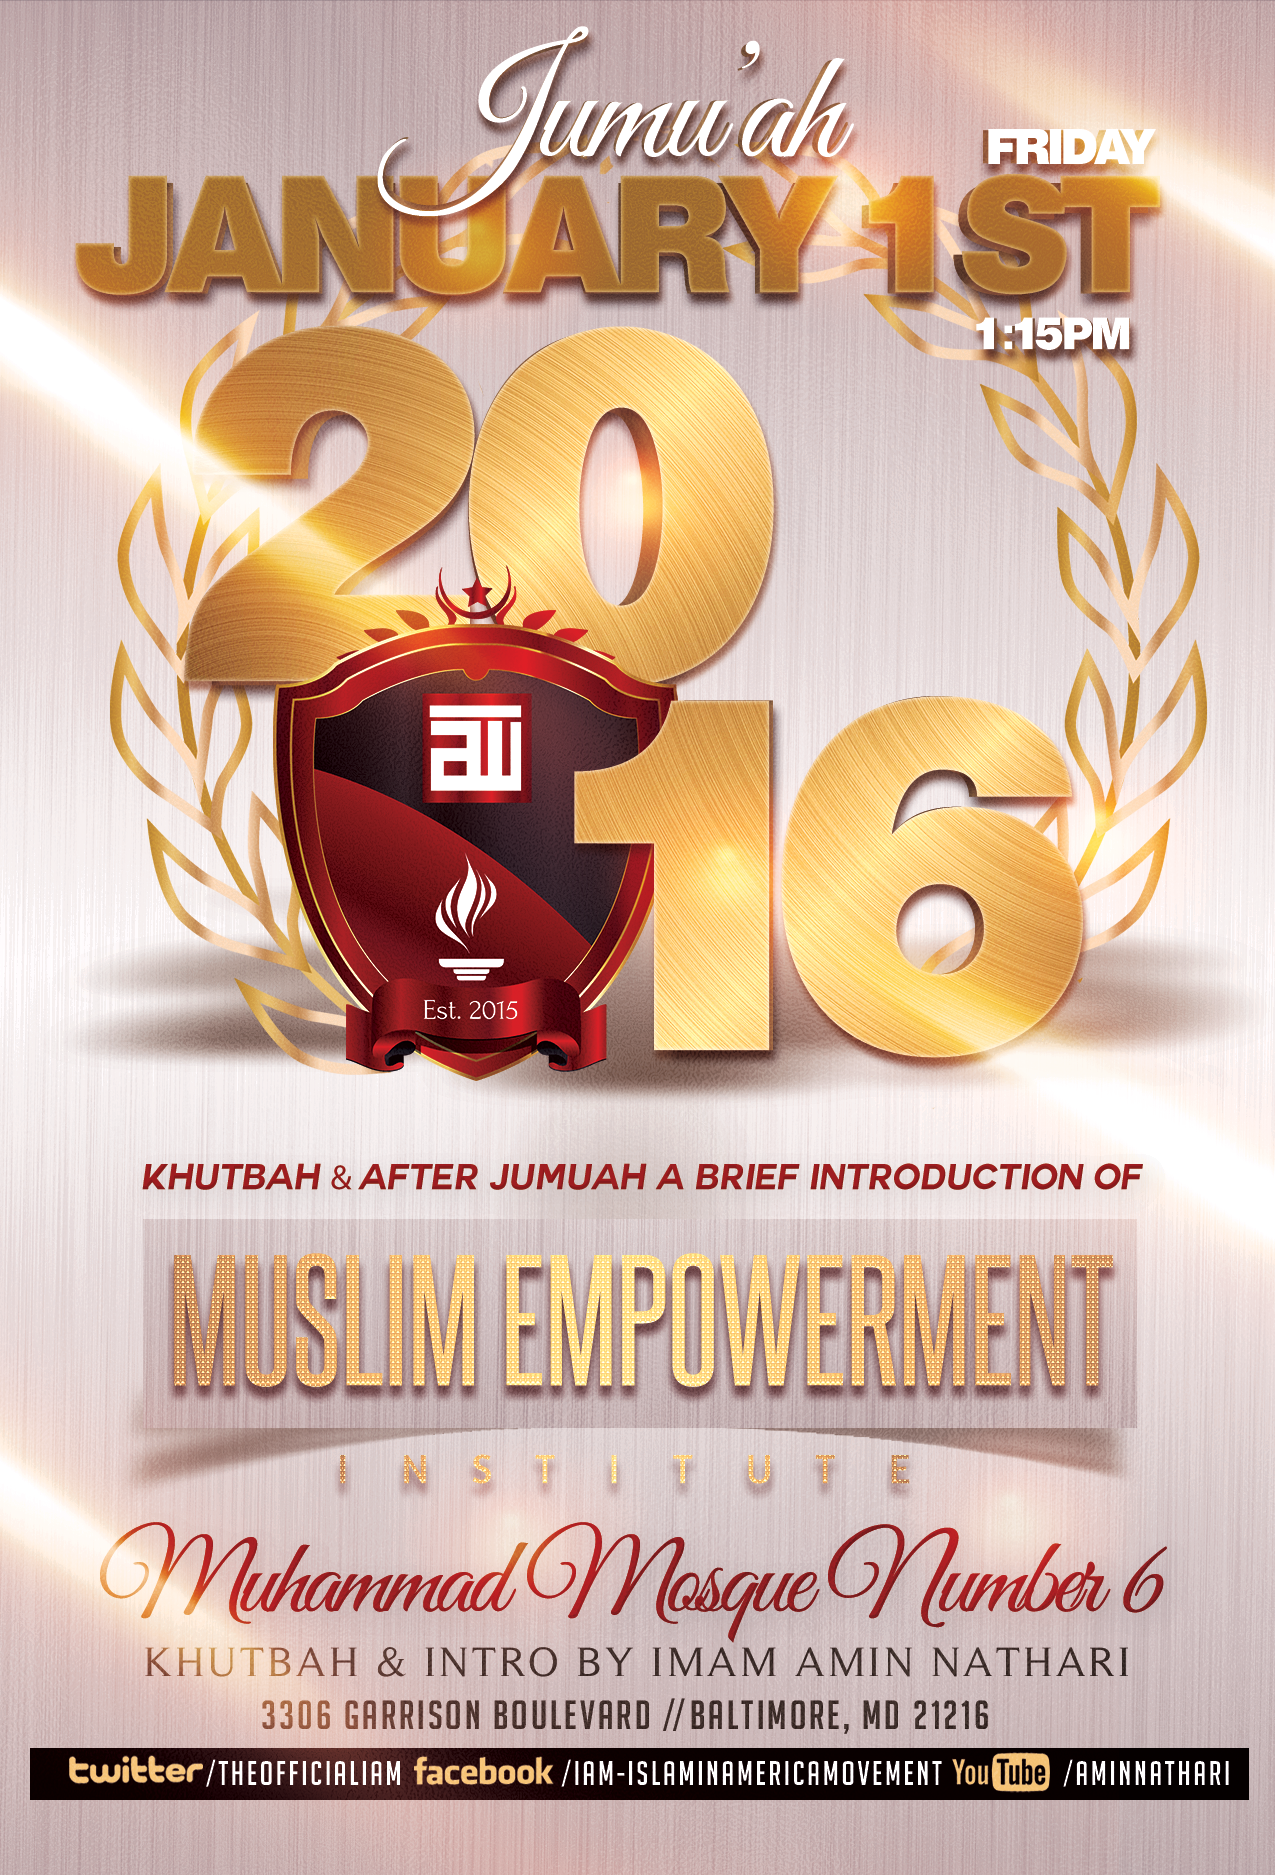 muslim-empowerment-january-1-2015-muhammad-mosque-number-six-baltimore-carlos-muhammad-mecca-digitale-mecca-donna-finale (2)